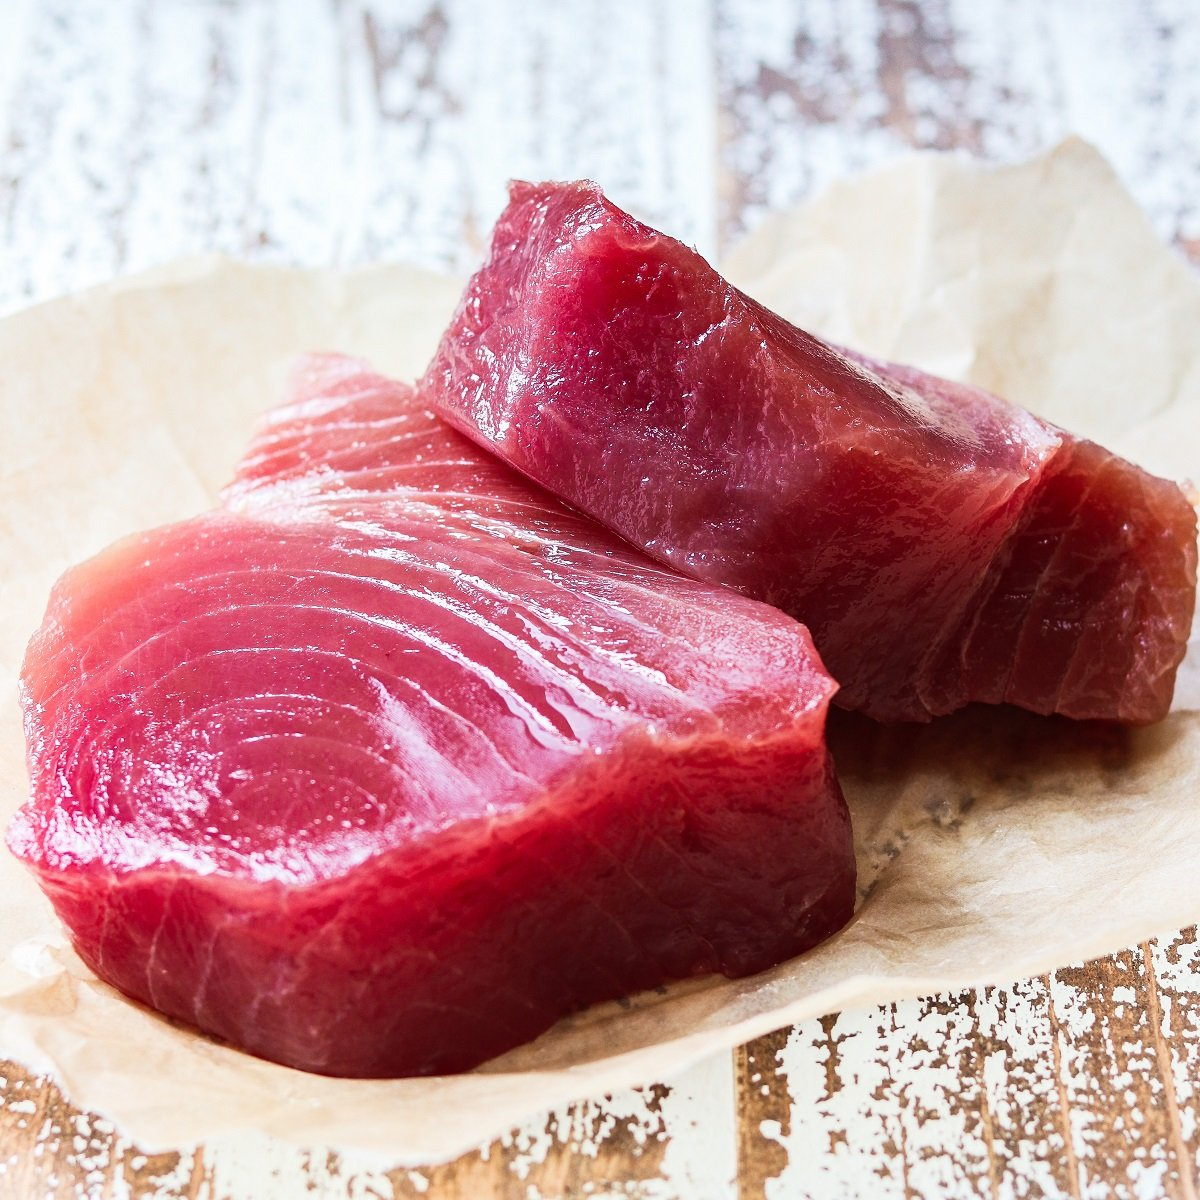 Two 1 ½-inch thick ahi tuna steaks on parchment paper.